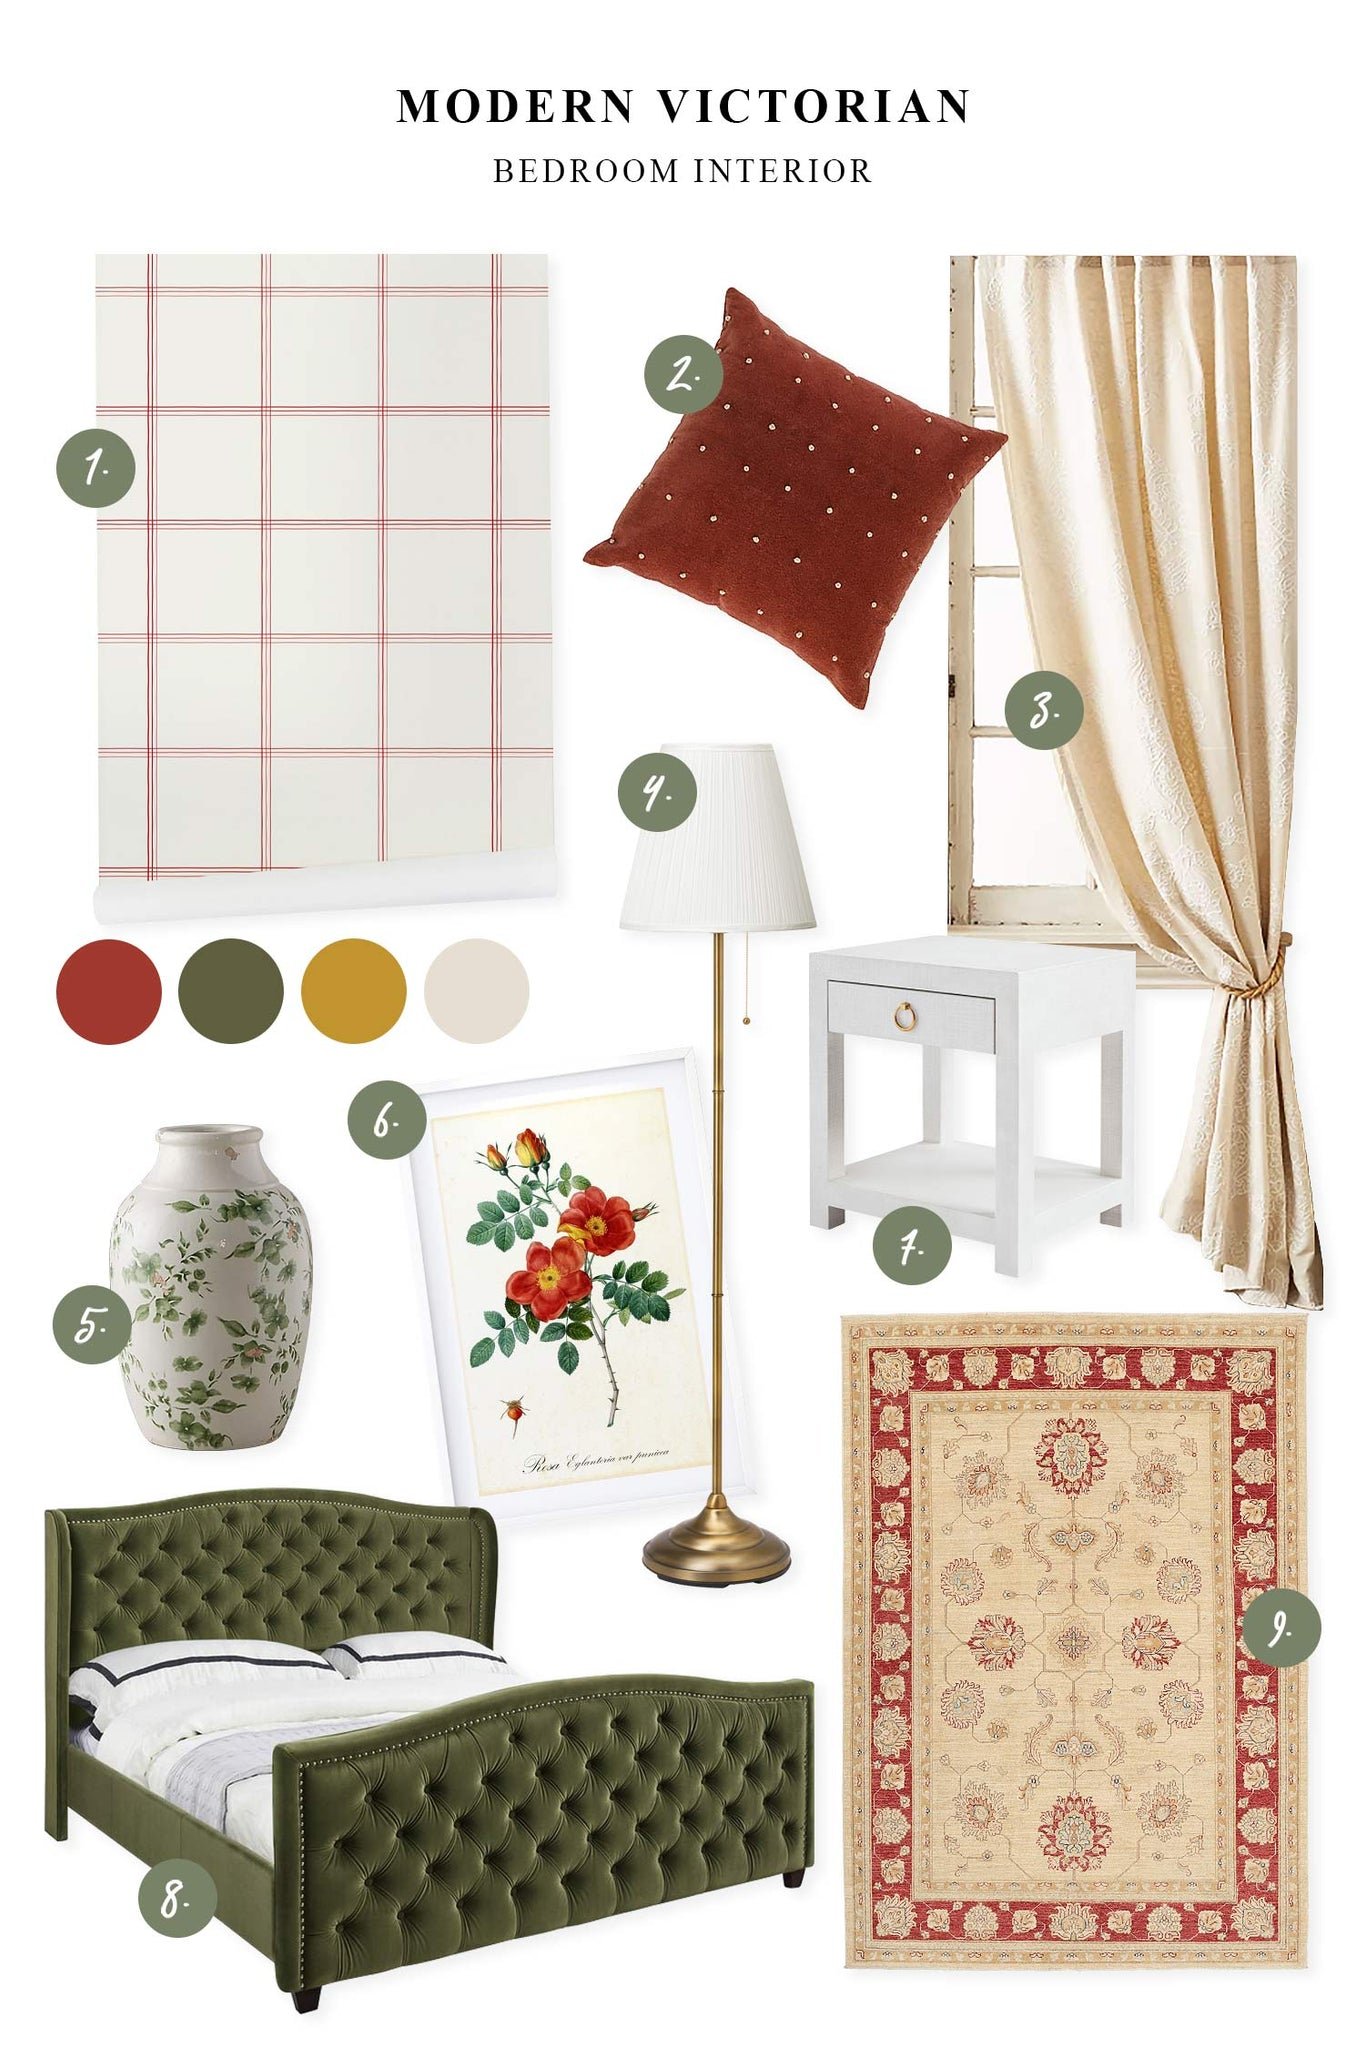 Granny chic bedroom inspirational mood board in red and khaki color palette